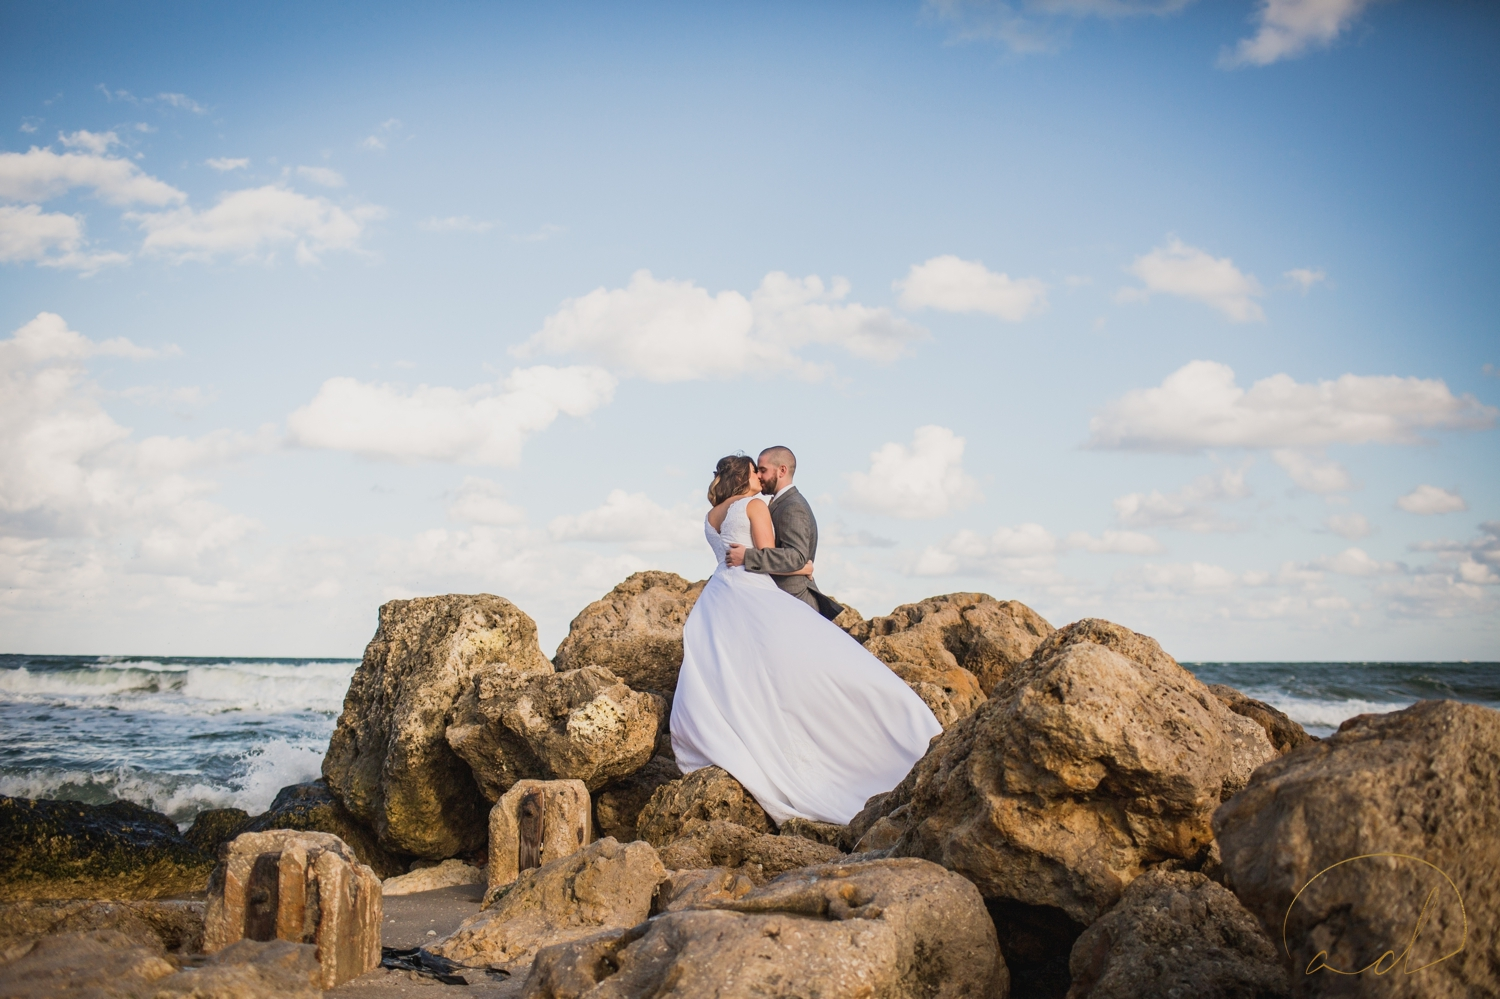 Emma Drew Addison Wedding Documentary Beach First Look Hillsboro Night Ohio State Fall November Florida Best Photographer 20.jpg